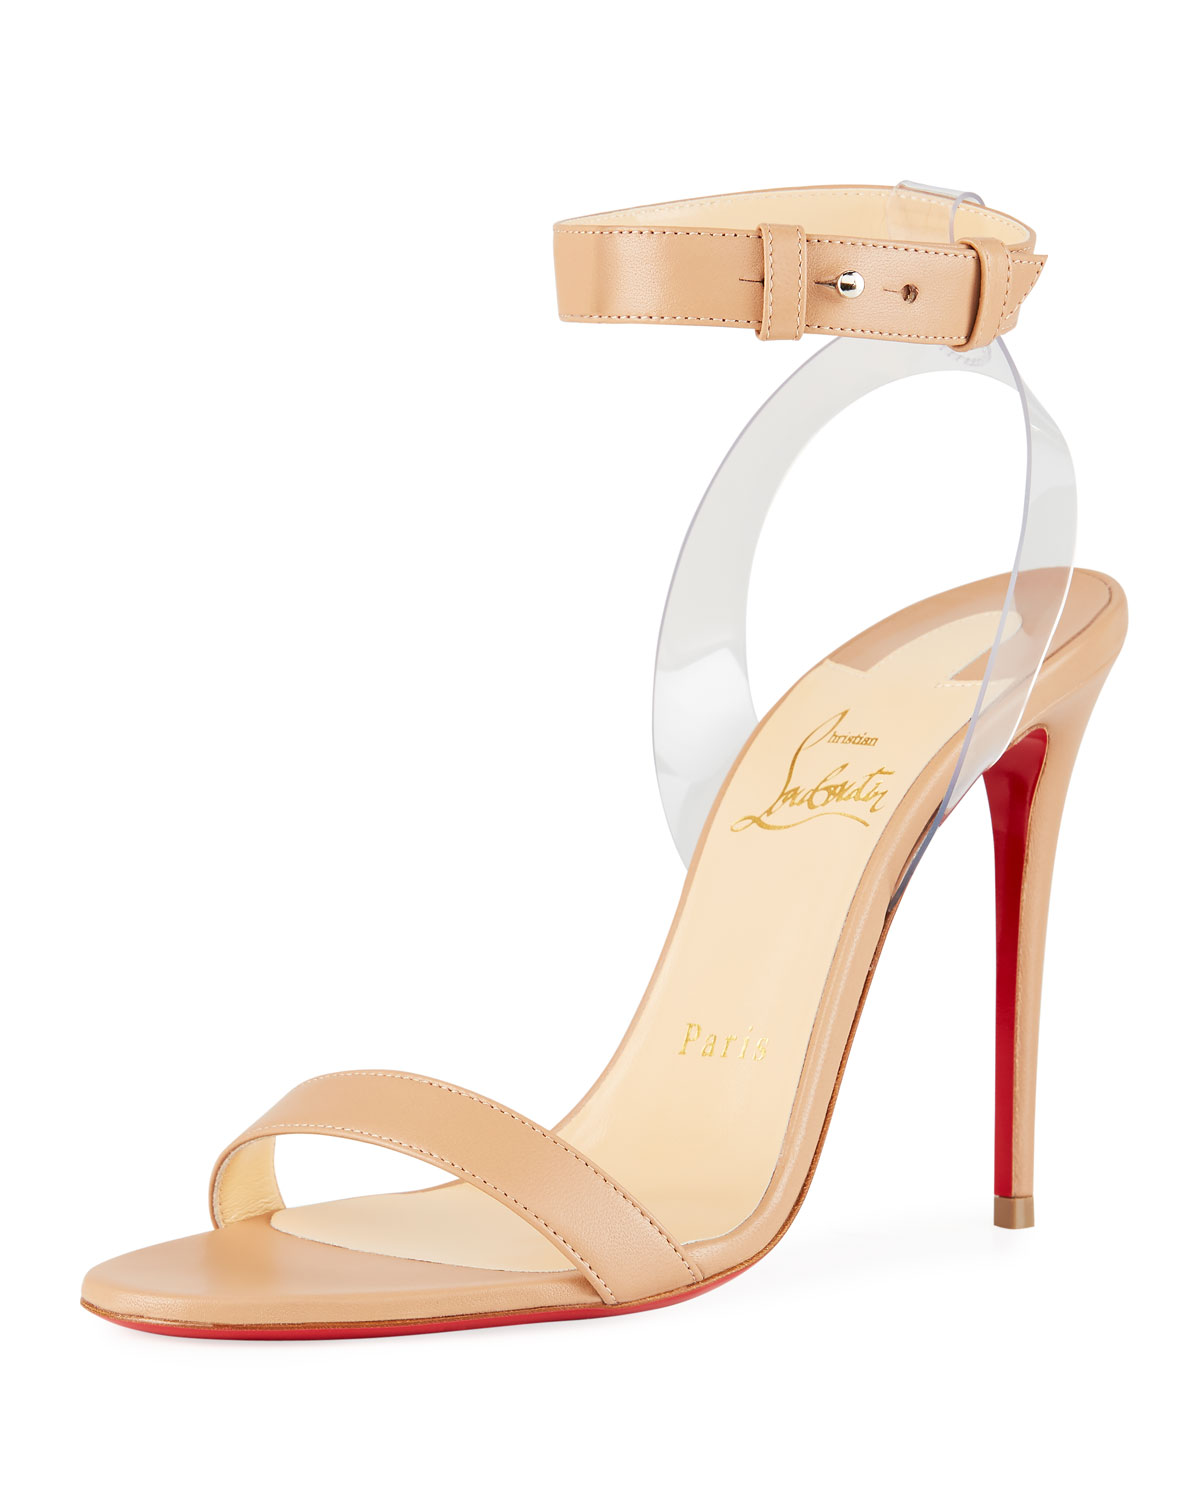 9157b0857c3e Christian Louboutin Jonatina Illusion Ankle-Strap Red Sole Sandals In  Neutral